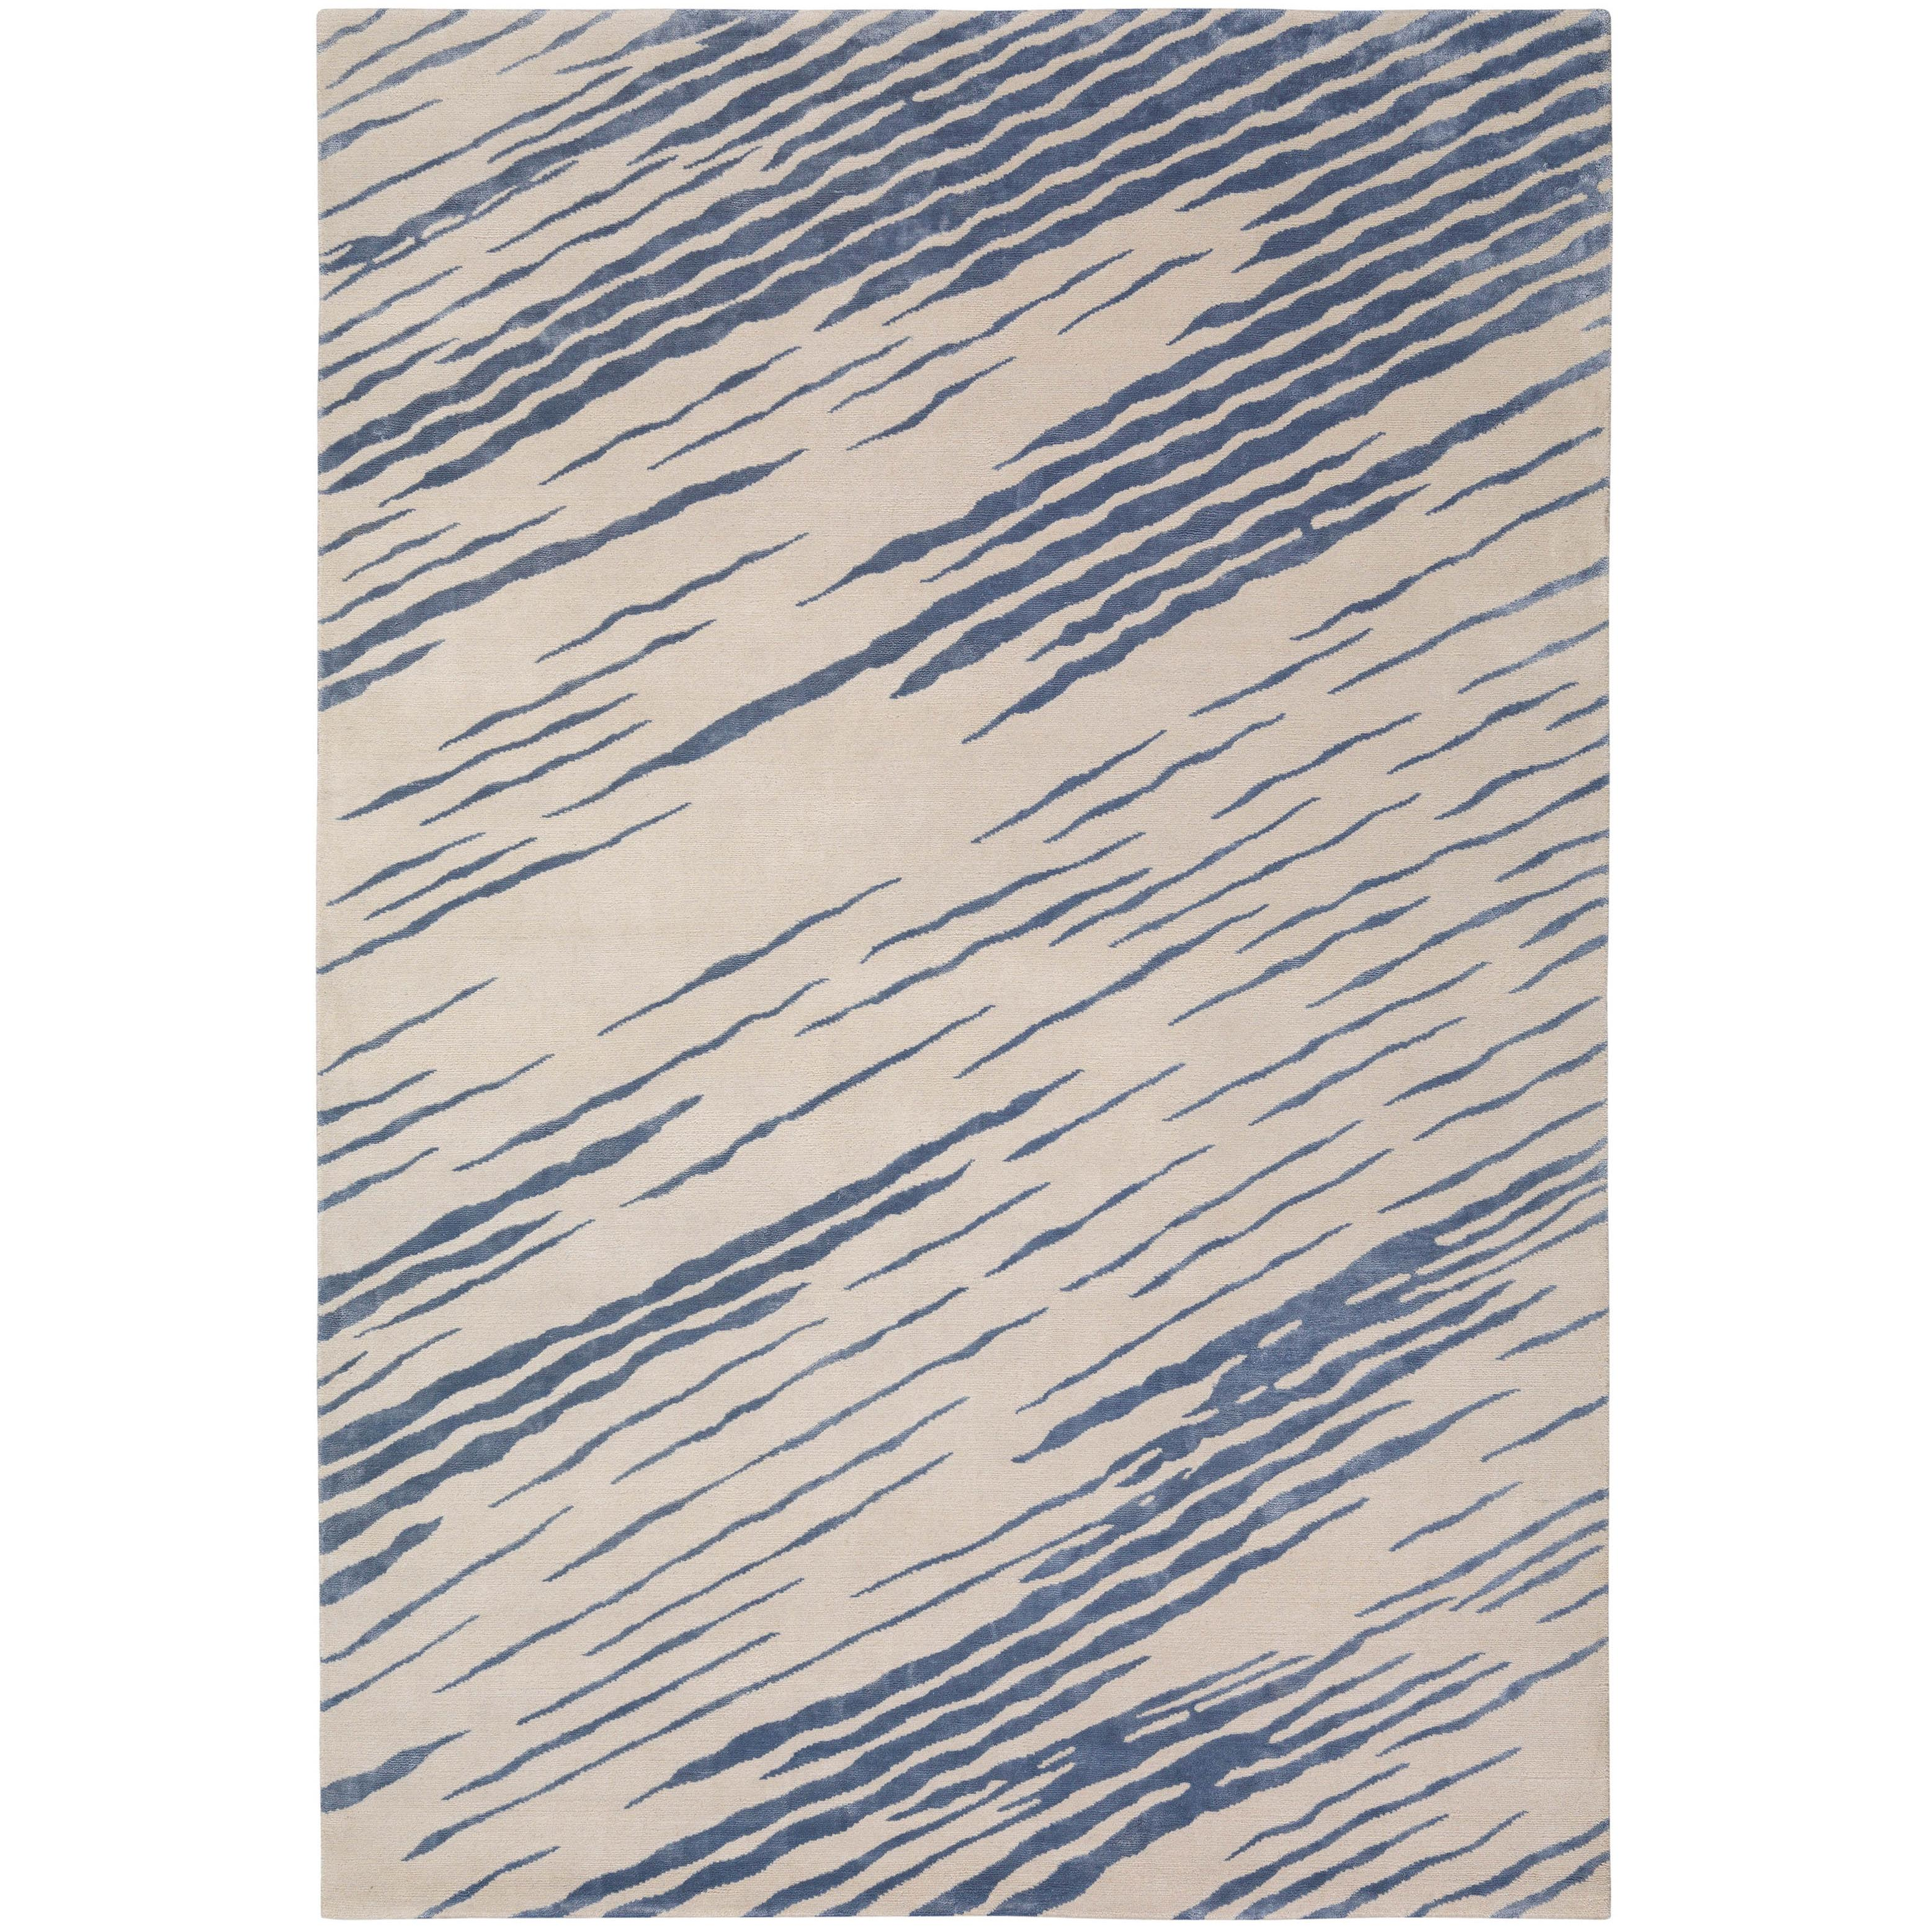 Flaunt Hand-Knotted 10x8 Rug in Wool and Silk by Kelly Wearstler